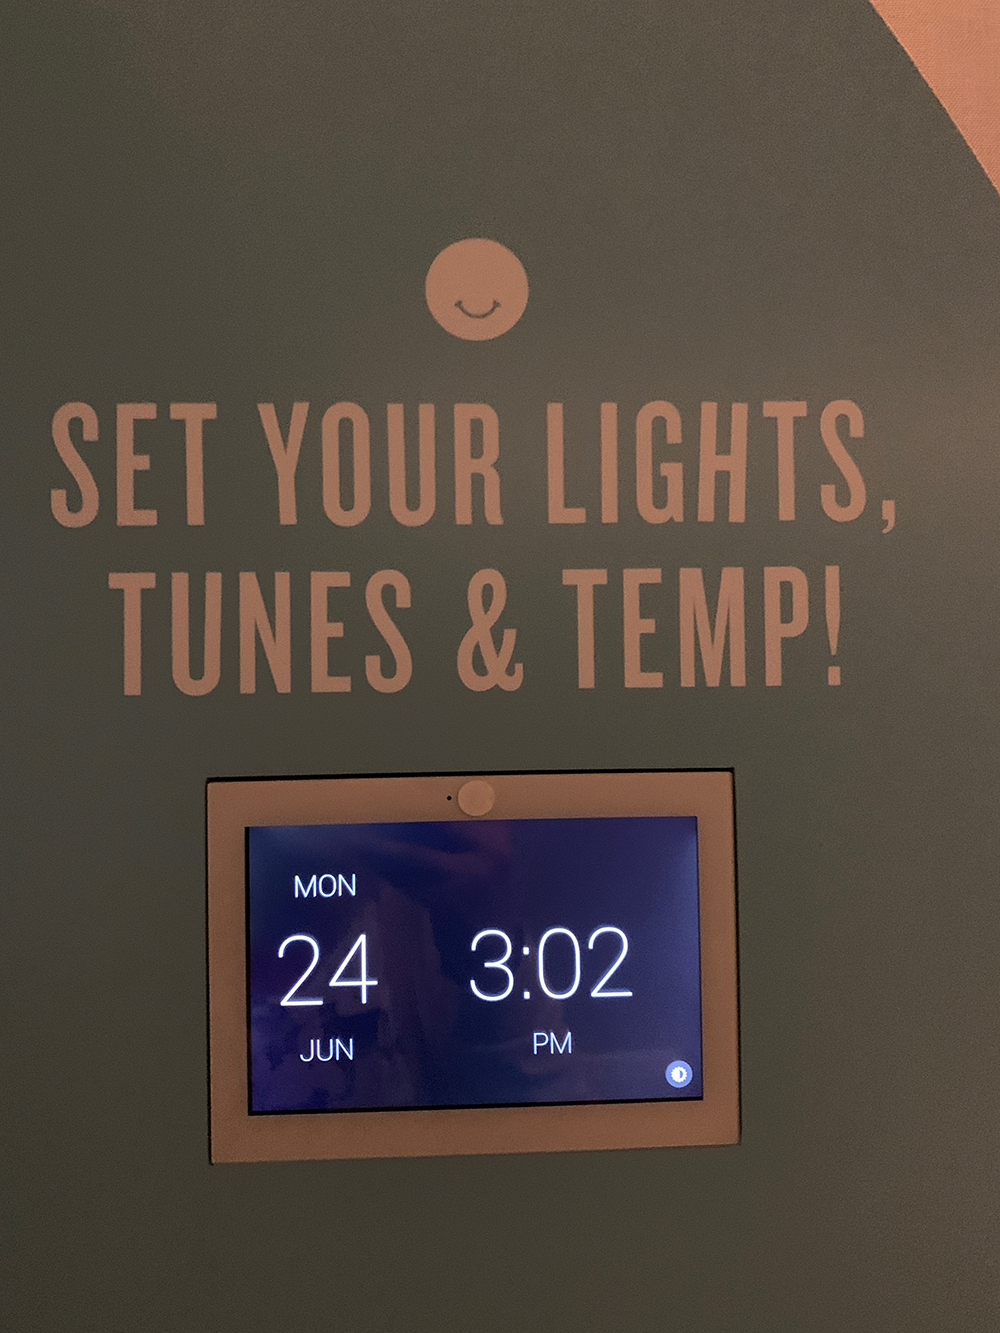 In addition to choosing music, guests can also adjust the room's temperature and lighting.